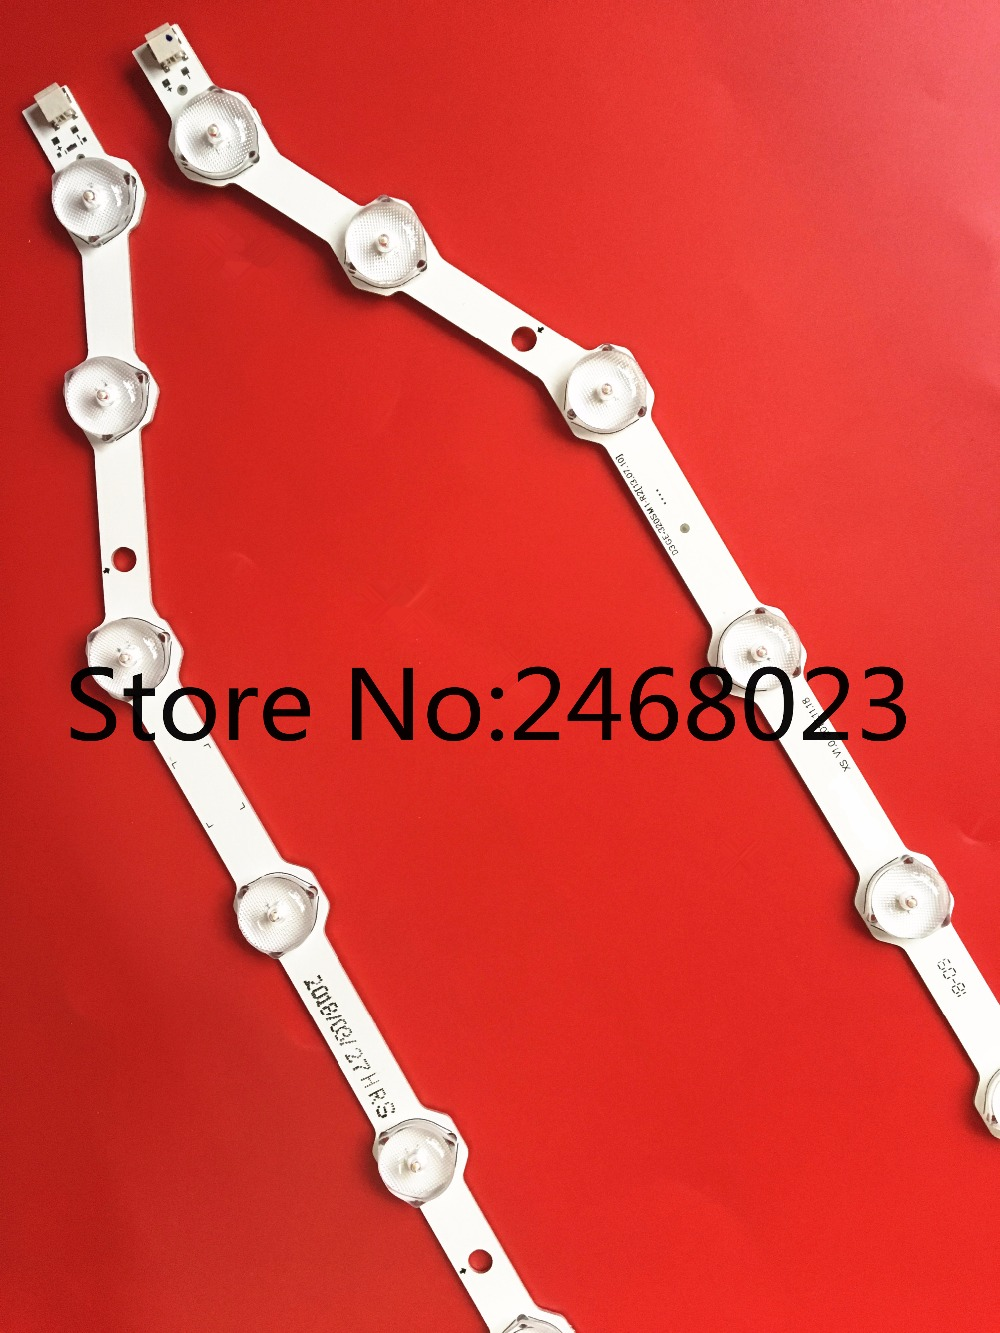 For Sam sung 32inch TV  BN96-28763A 12-LED Button Backlight Strip D3GE-320SM1-R2, LM41-00001S